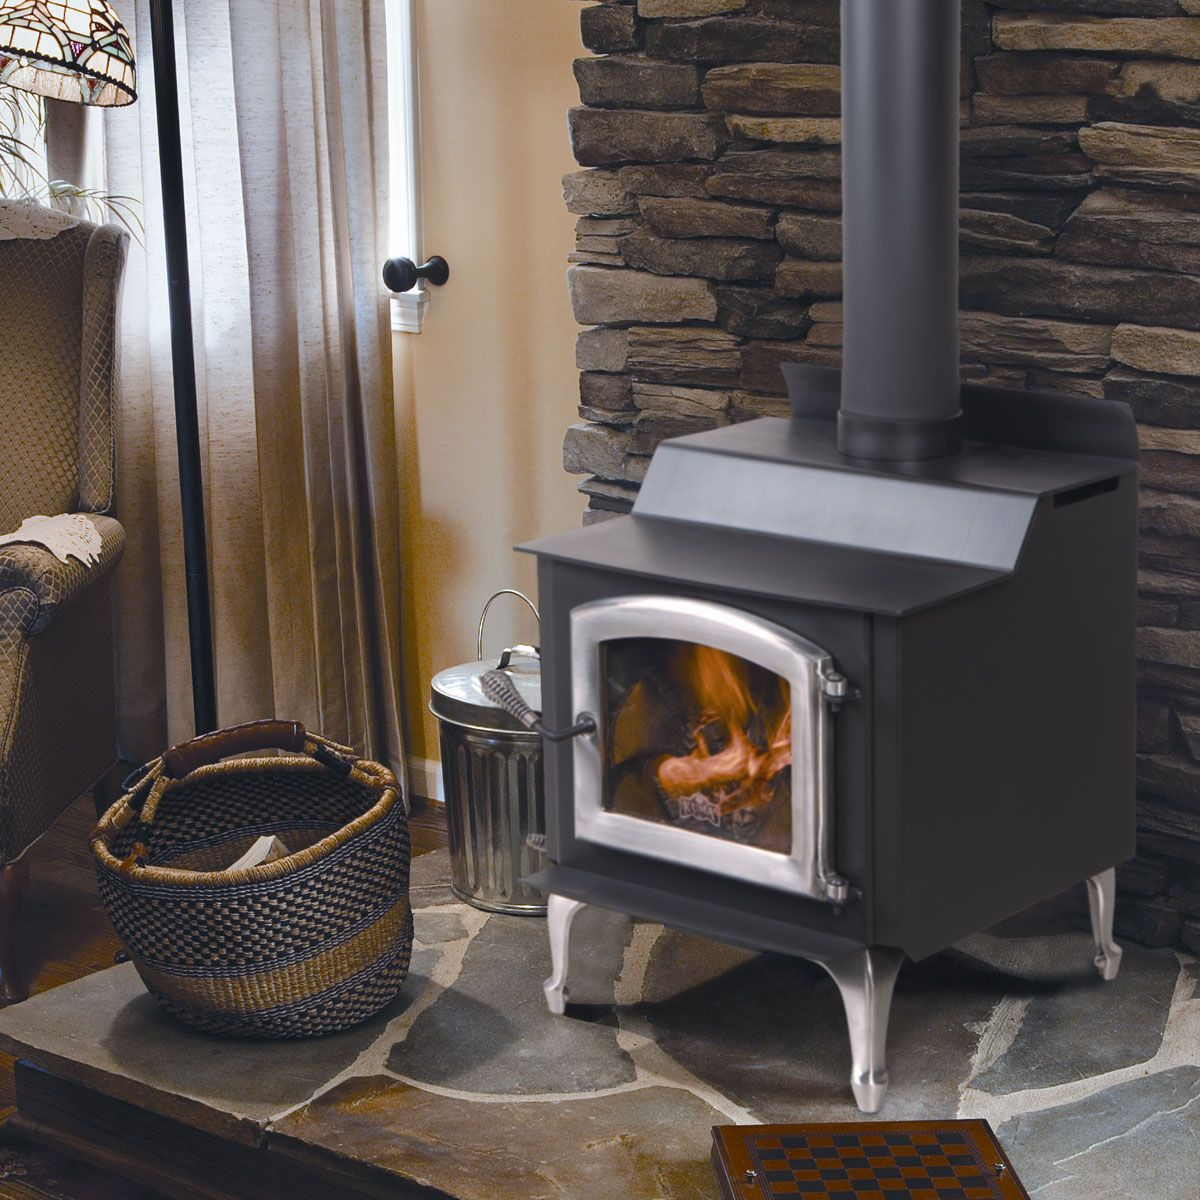 Kuma Tamarack wood stove, made in the USA https//www